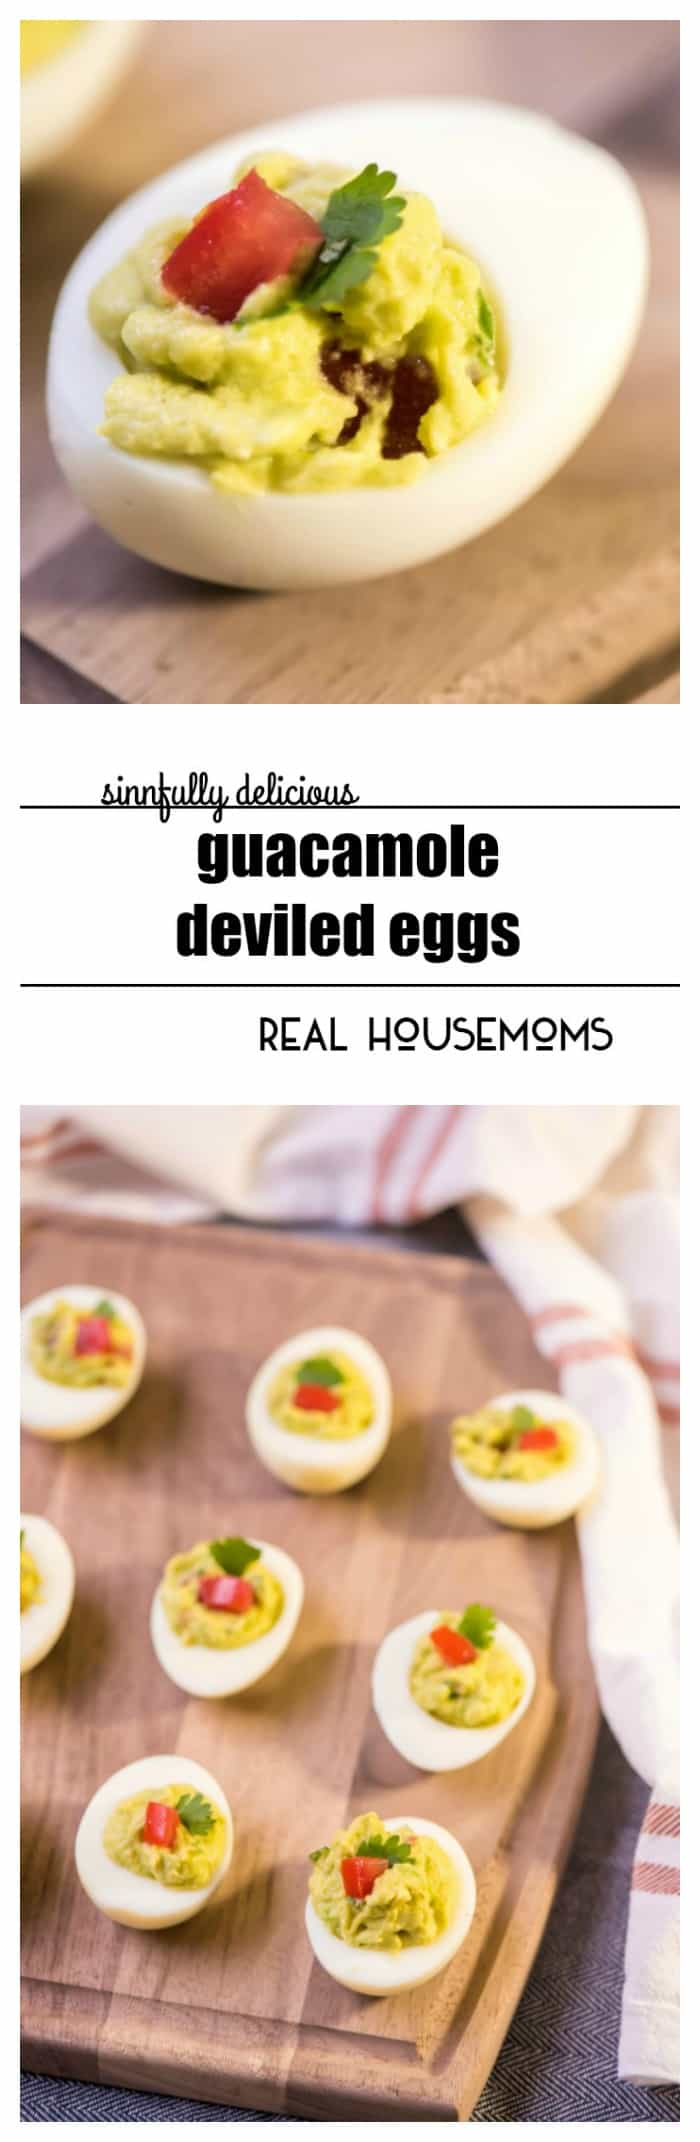 GUACAMOLE DEVILED EGGS are an easy appetizer recipe! Avocado replaces the mayo so they're a lightened up alternative to classic deviled eggs! These are a great Super Bowl recipe!